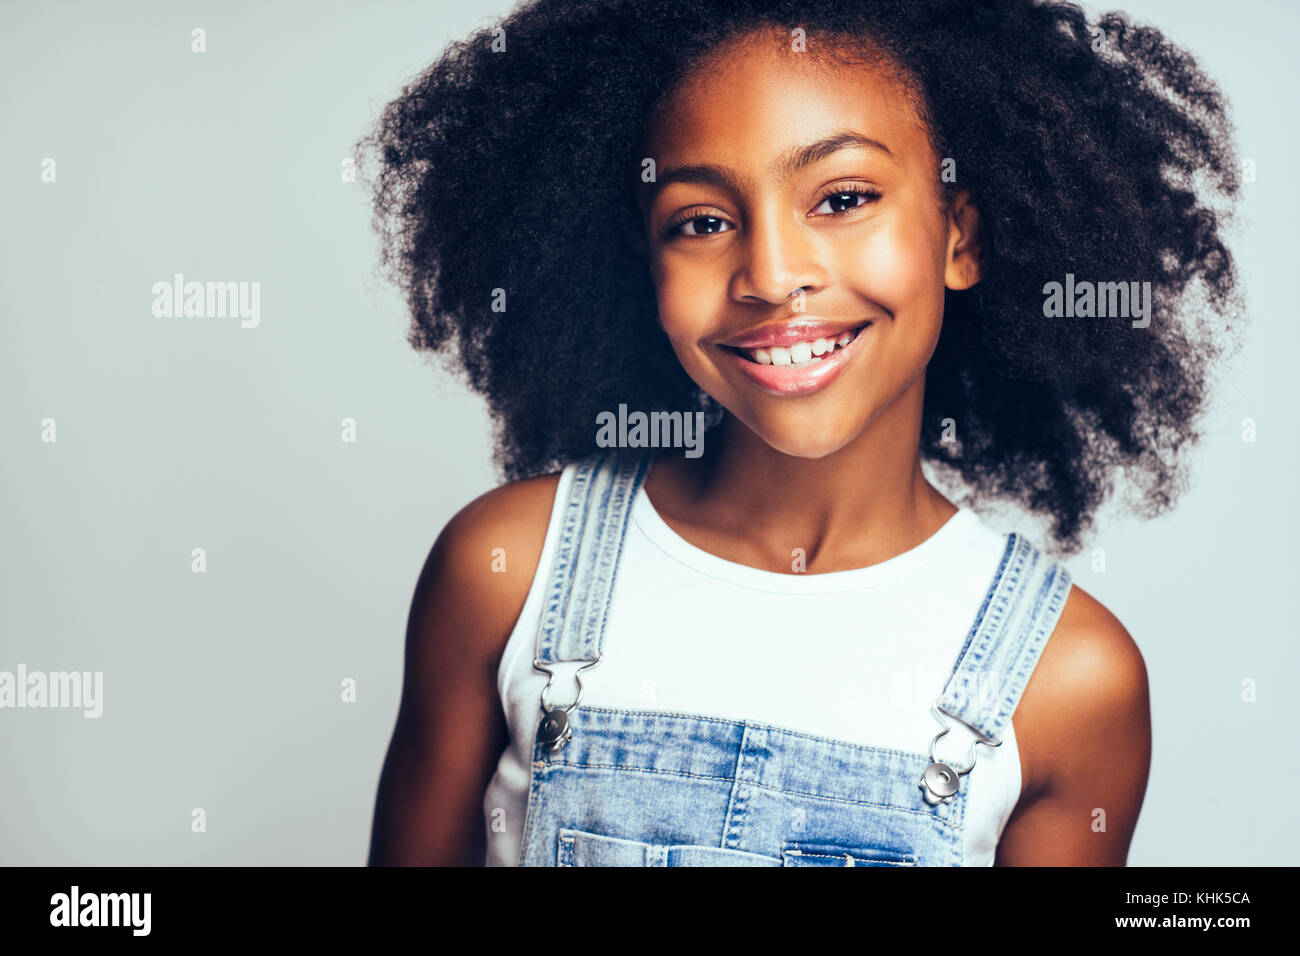 Cute Young African Girl With Long Curly Hair Smiling And Wearing